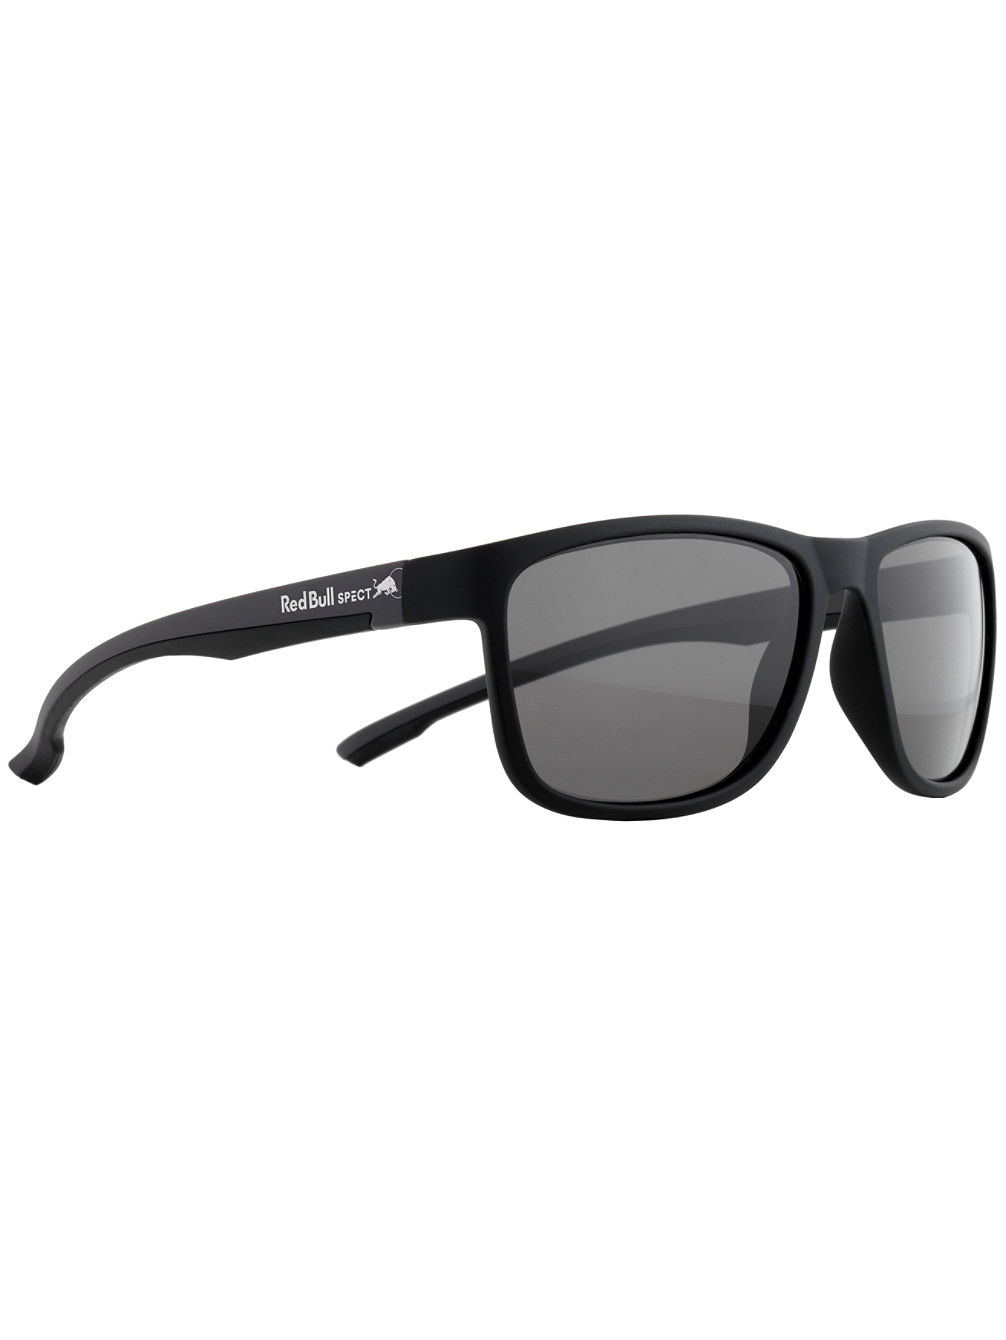 7491a22a64 Buy Red Bull SPECT Sunglasses Twist Matte Black Matte Grey Temple ...